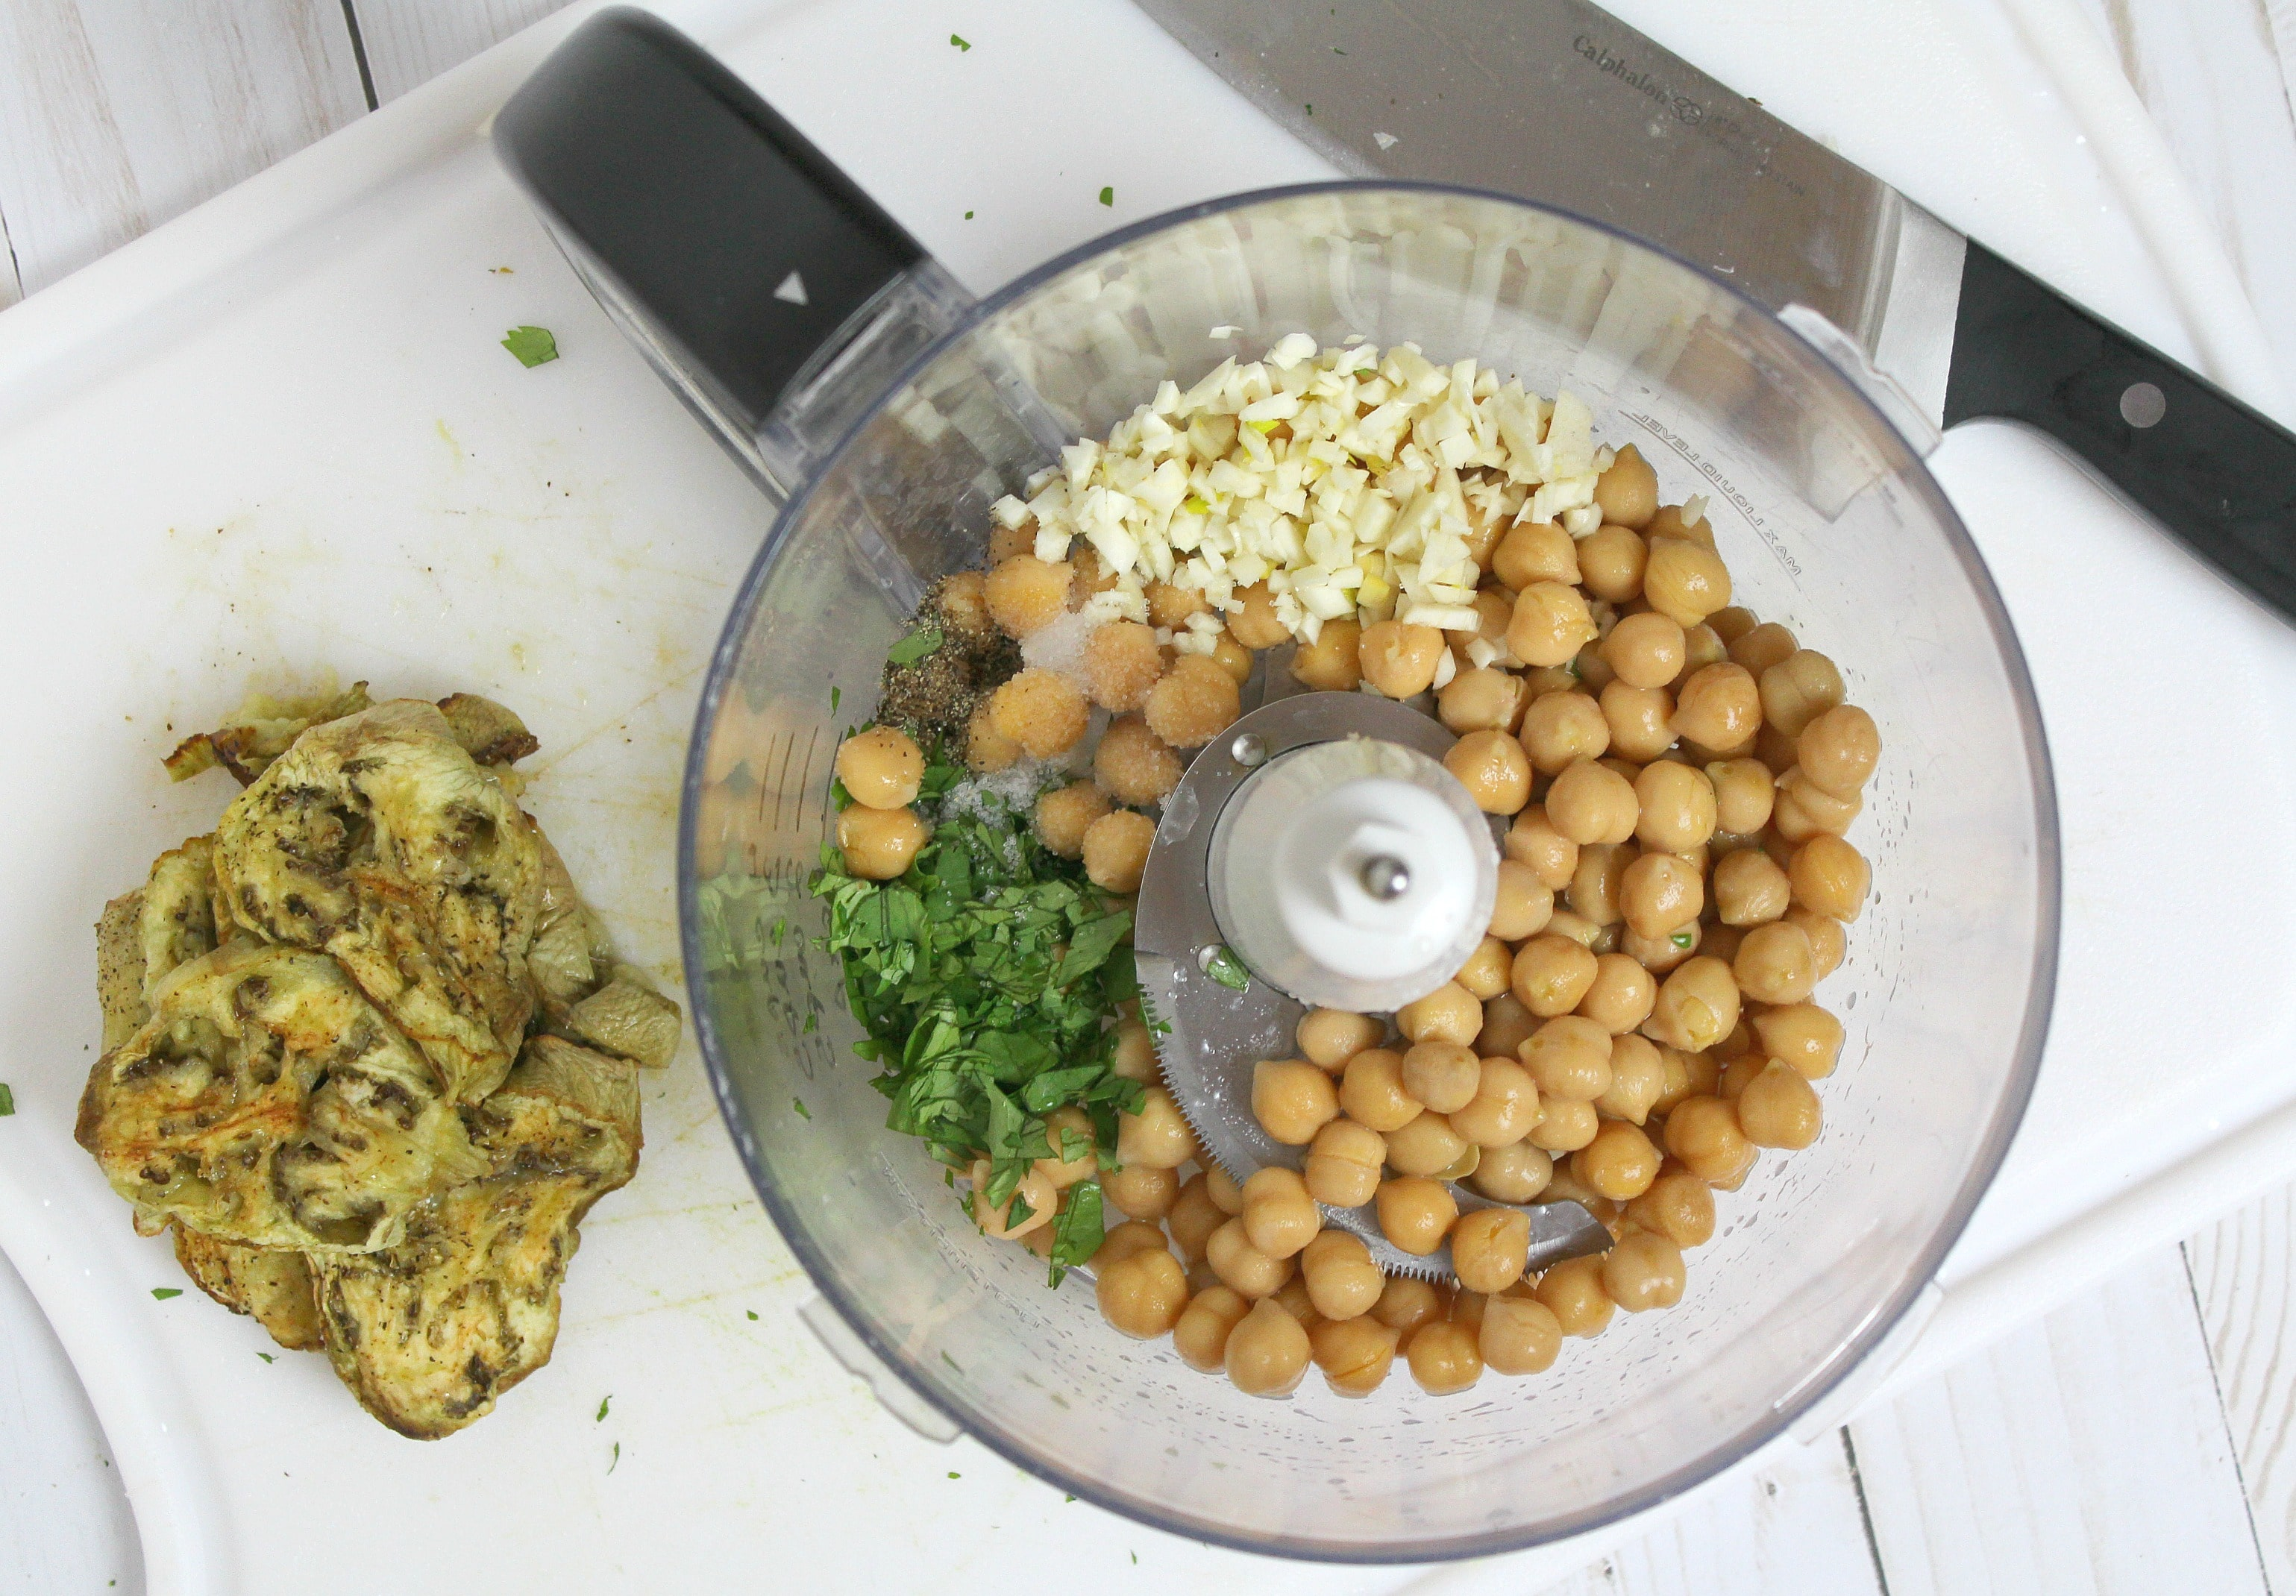 Add chickpeas, garlic, and other ingredients to a food processor and blend for a few seconds, until smooth.